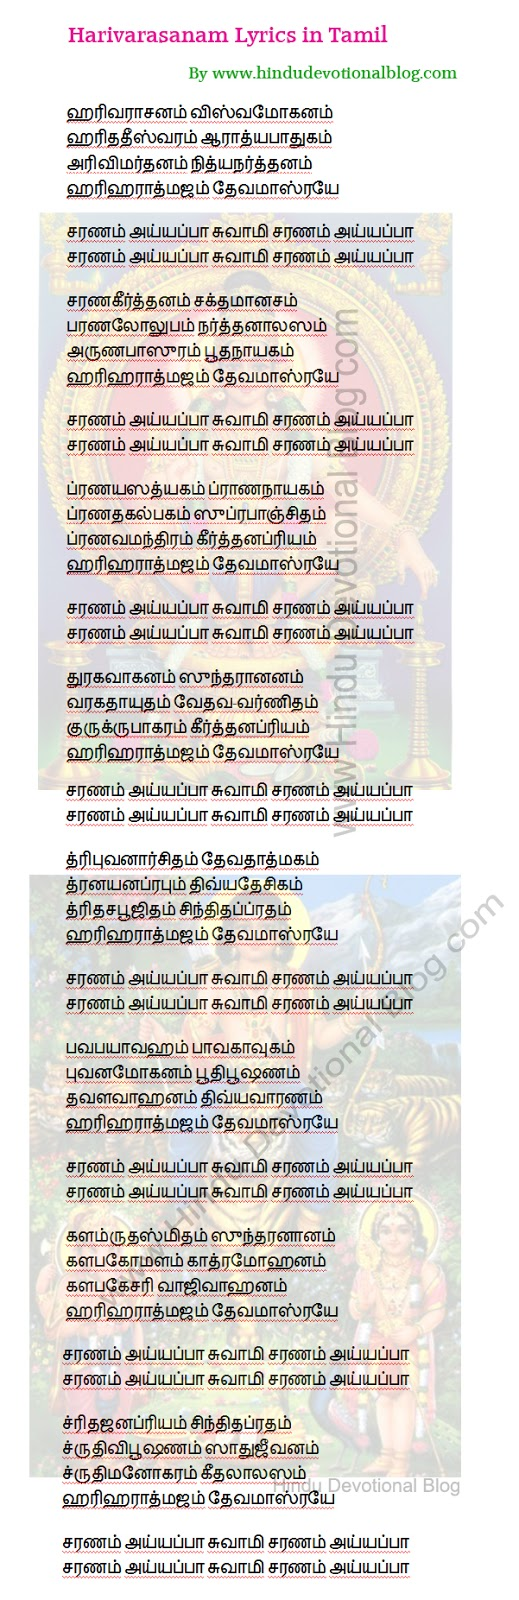 harivarasanam lyrics in Tamil language picture by Hindu devotional blog